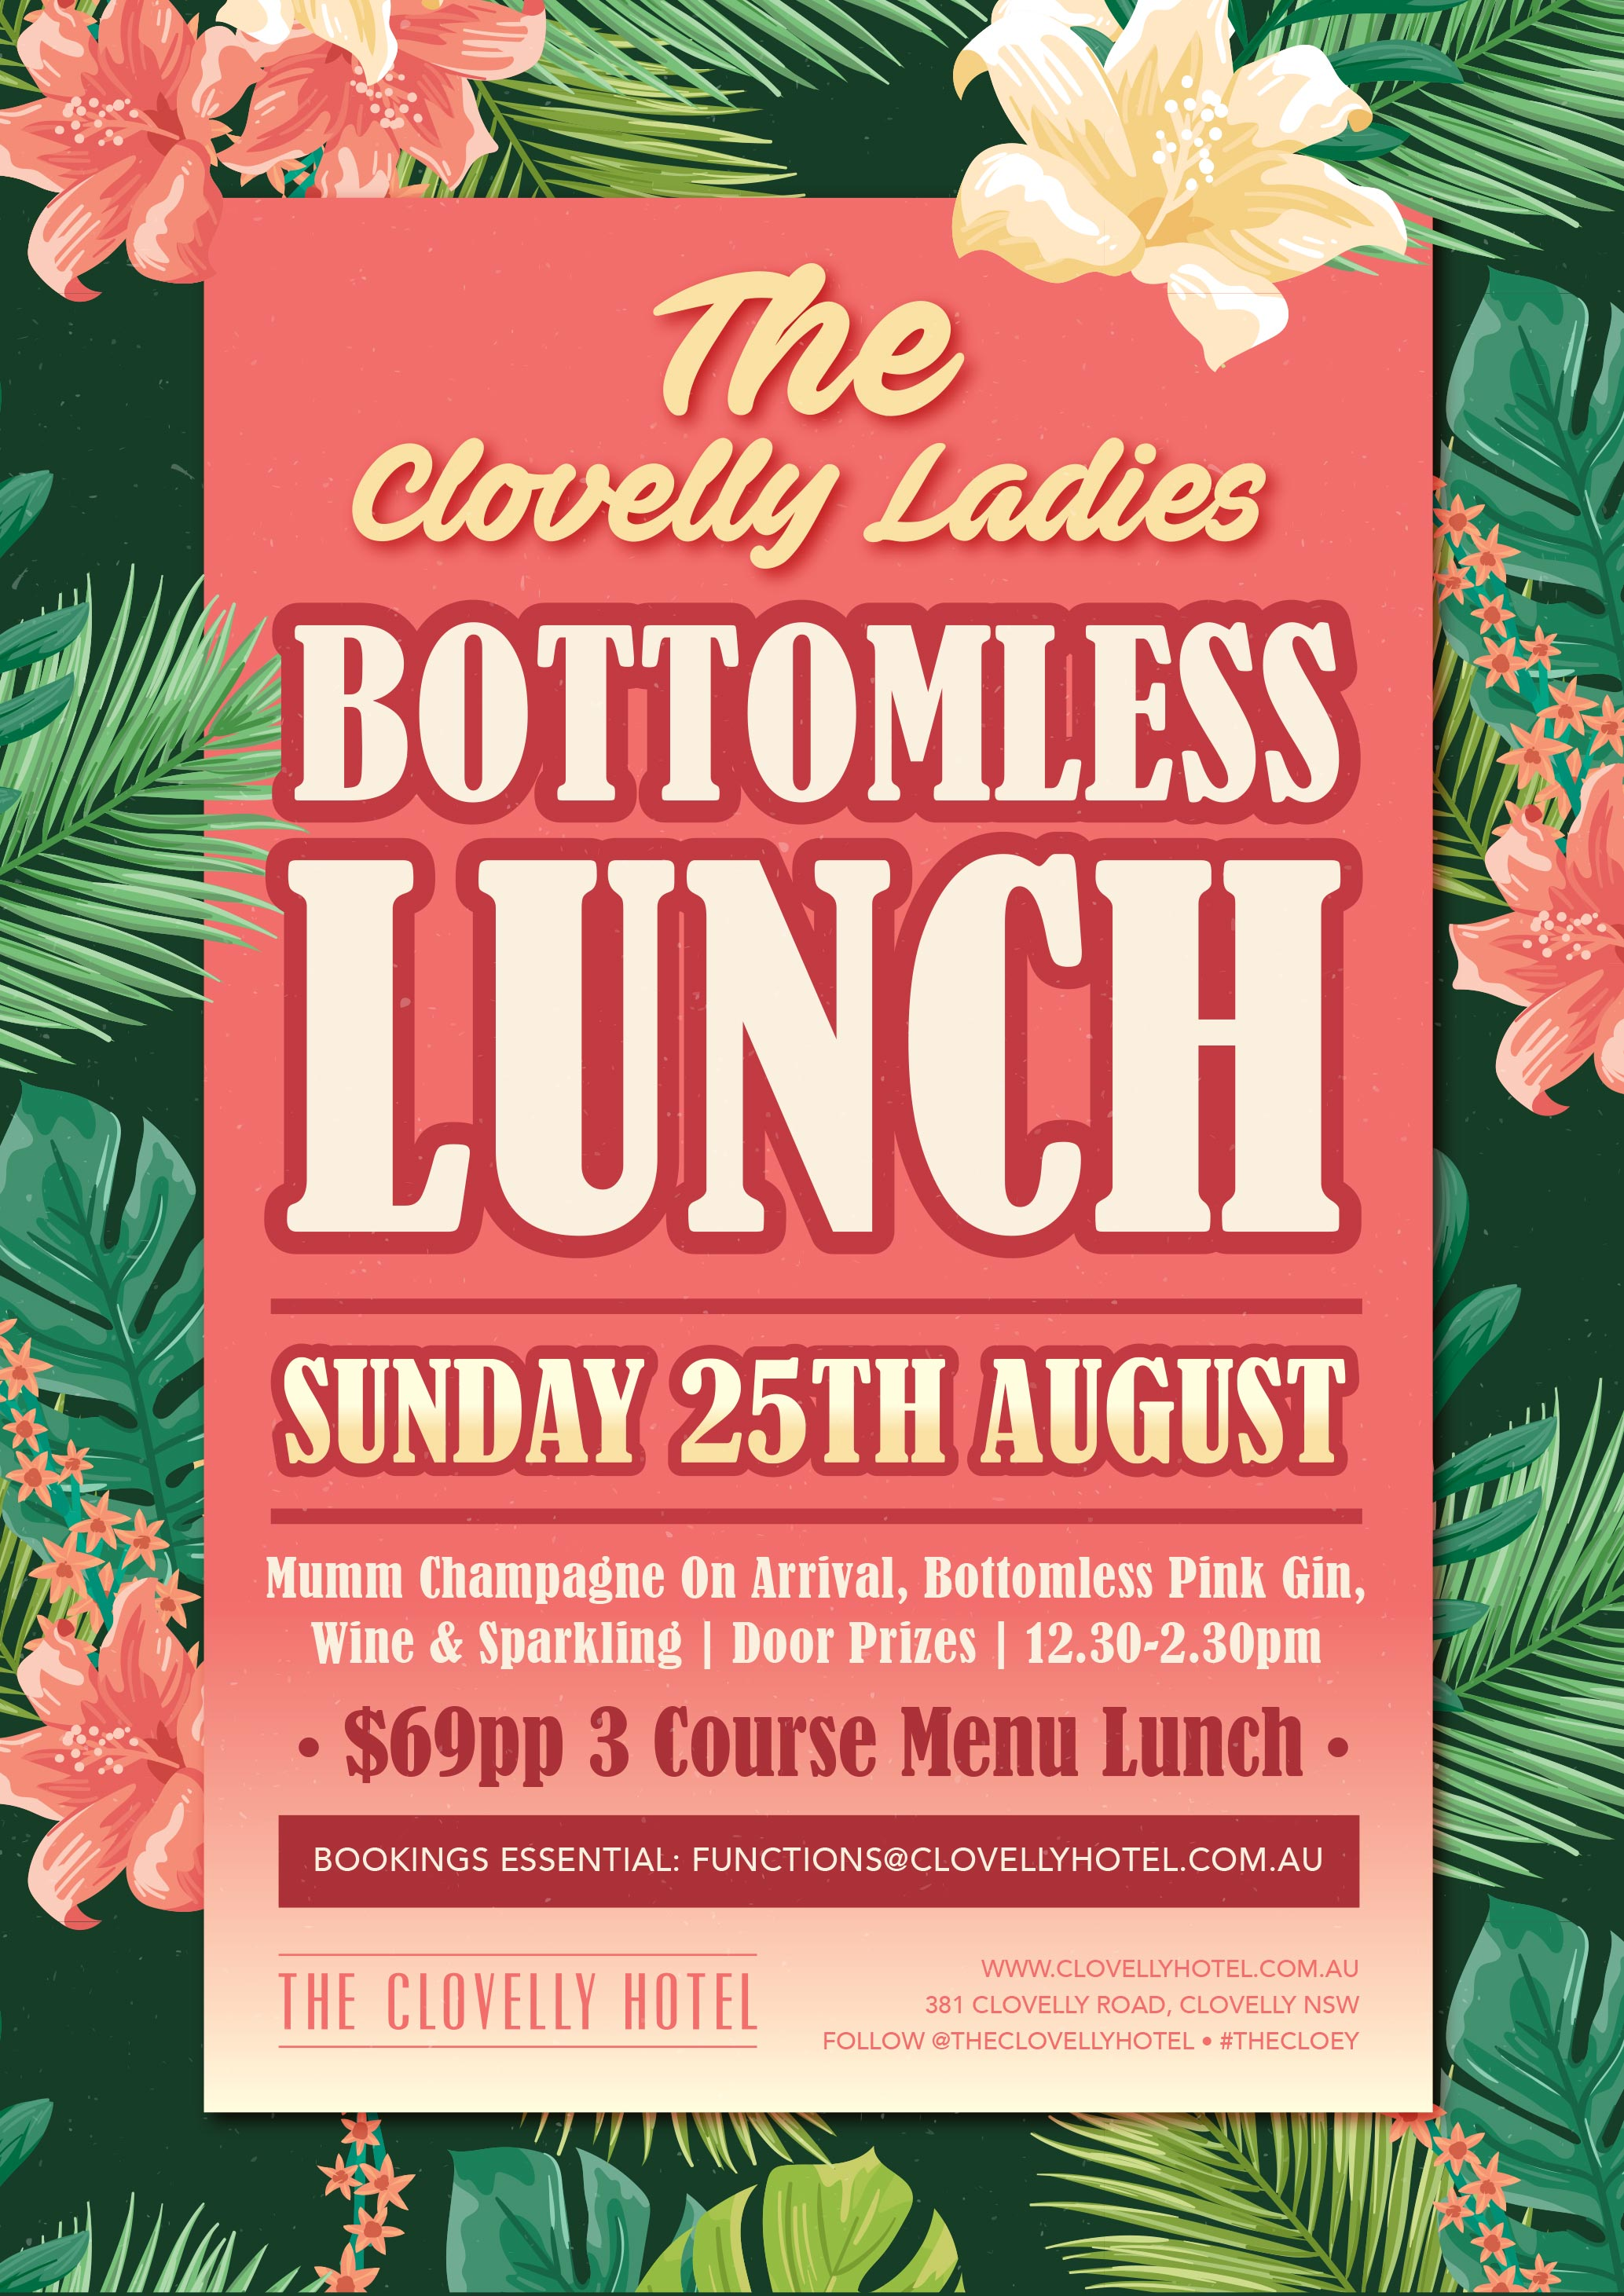 Bottomless Lunch at the Clovelly